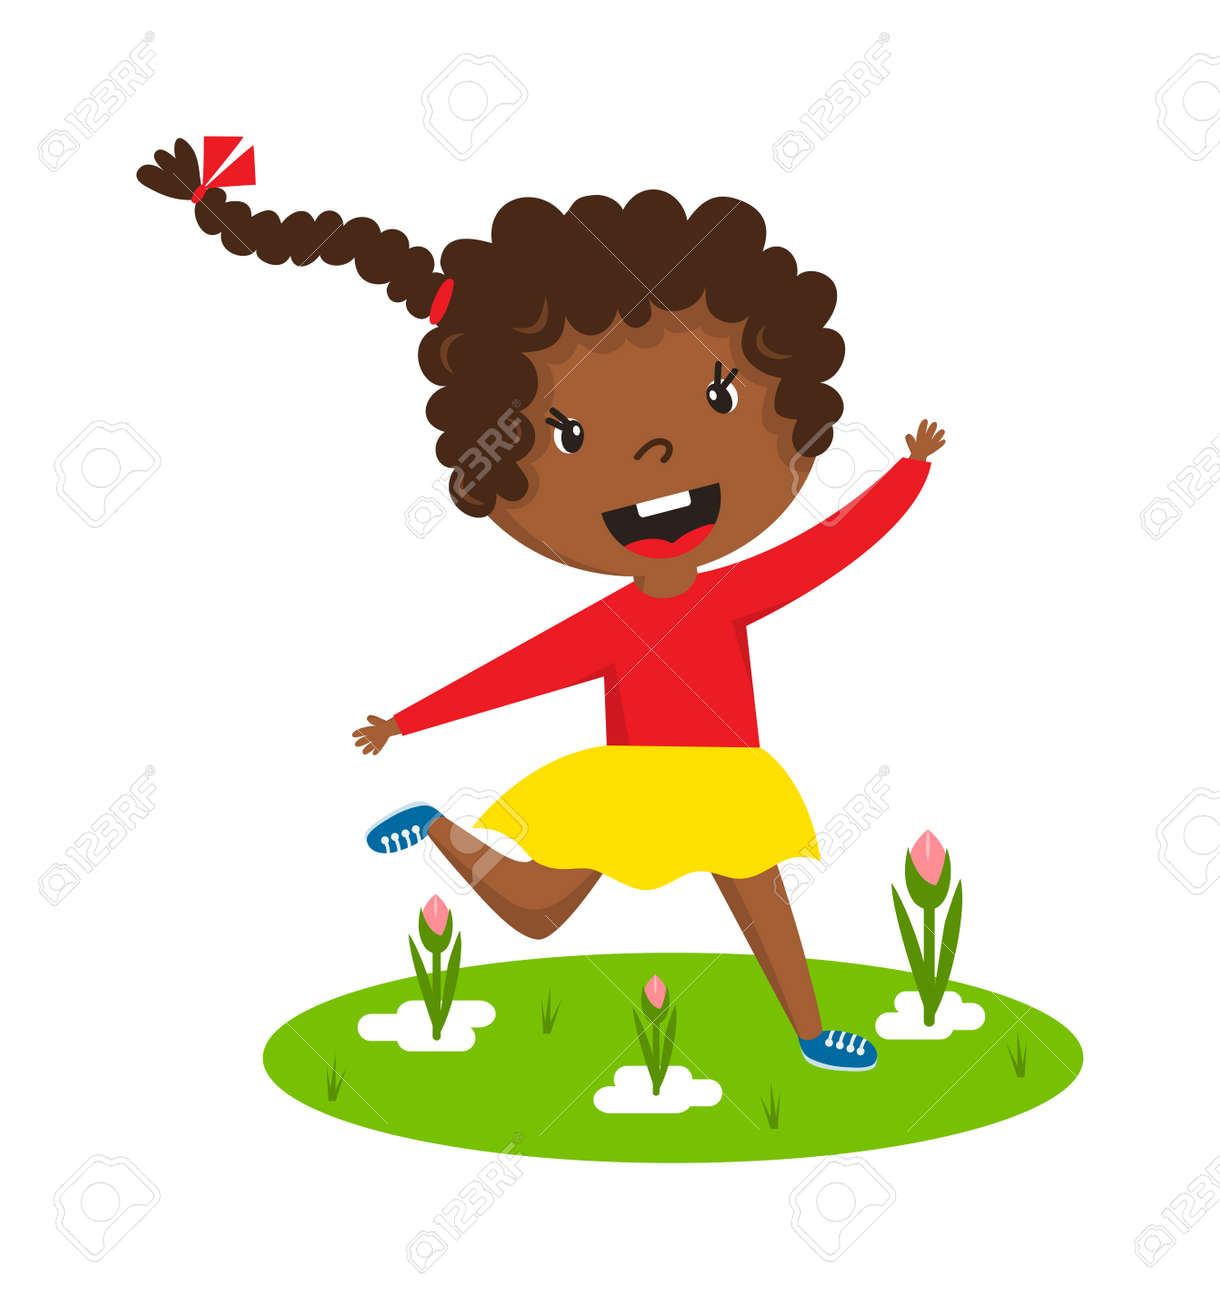 Cute Running Black Afro Girl With Curly Frizzy Hair On Green Royalty Free Cliparts Vectors And Stock Illustration Image 55893195